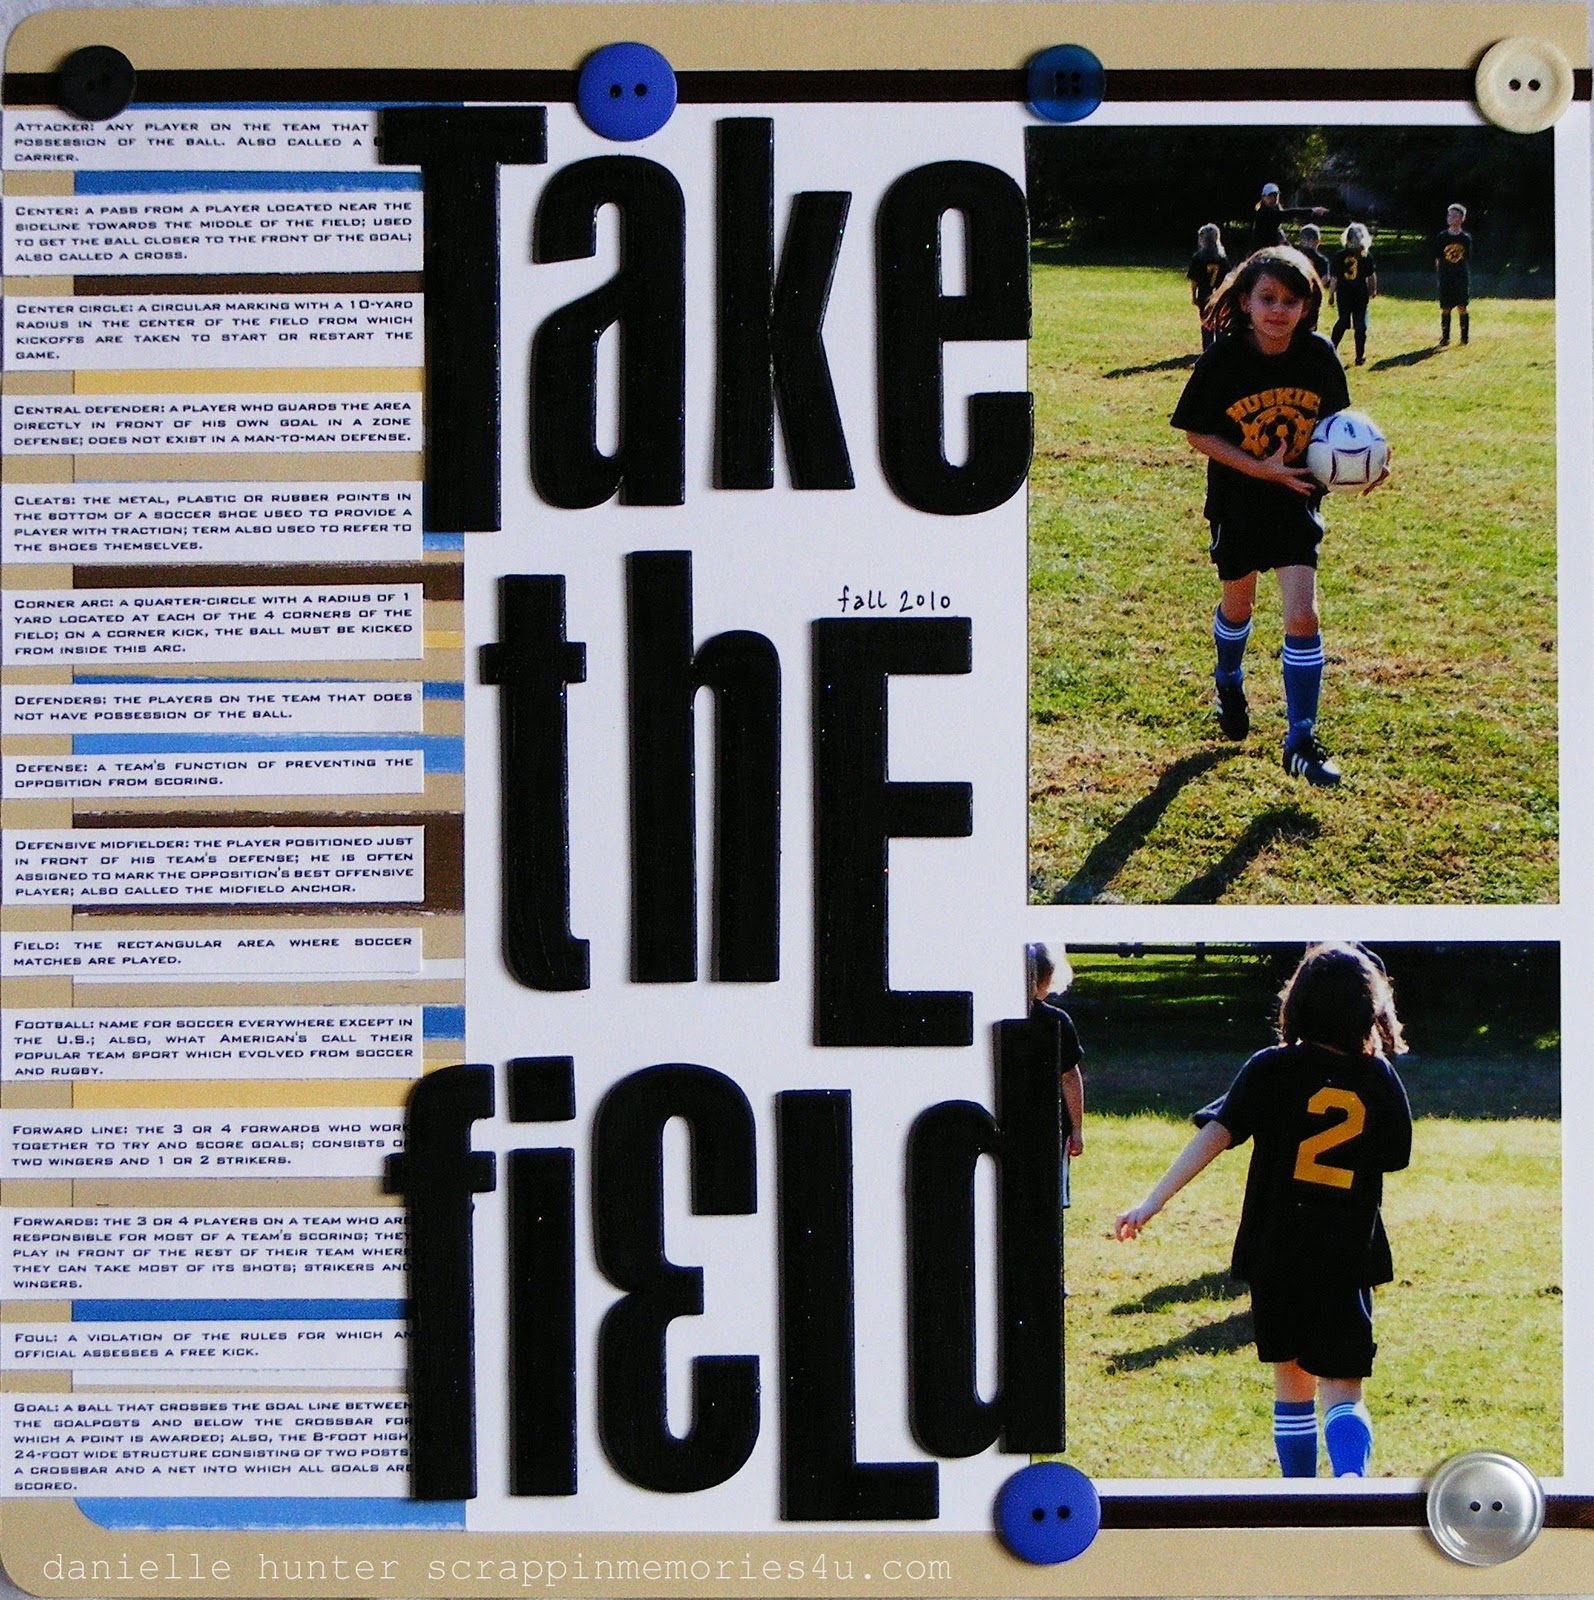 Scrapbook ideas writing - I Didn T Feel Like Writing The Typical Journaling Since I Had Recently Completed Another Soccer Scrapbook Layout So I Opted For A Soccer Glossary